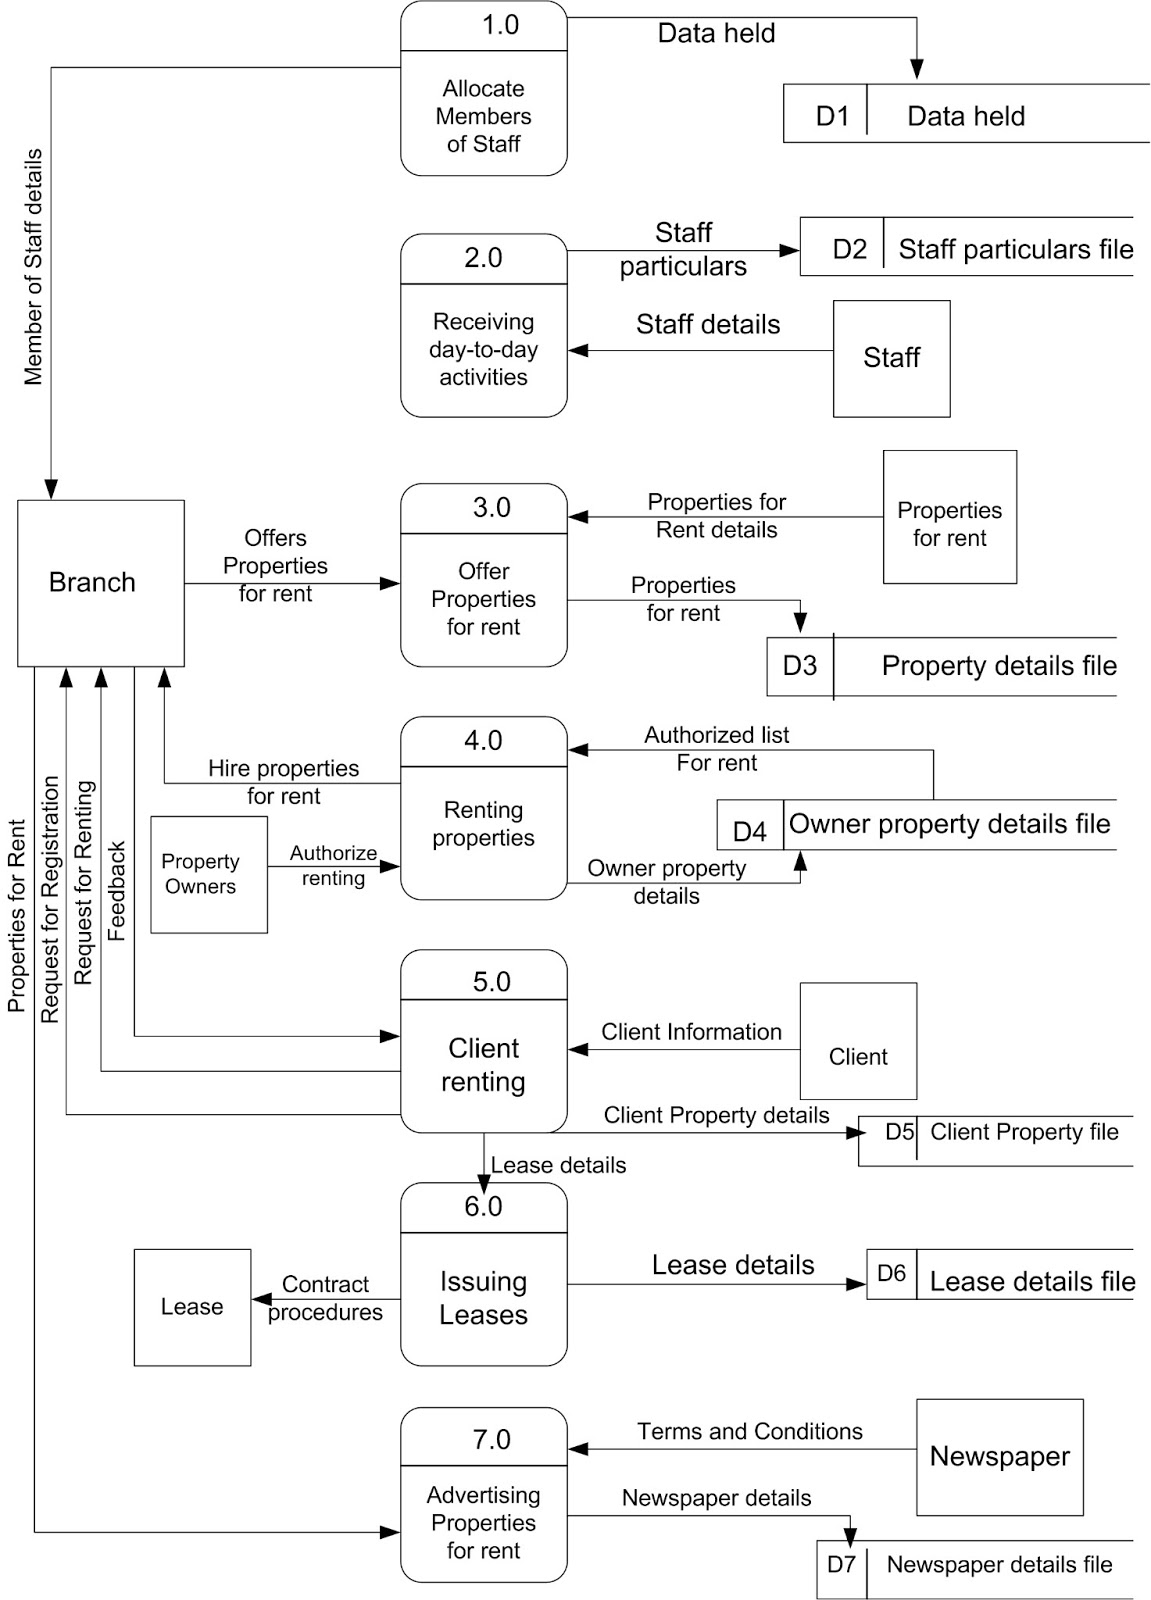 a level 0 data flow diagram dfd for proposed system for dreamhome case study  [ 1151 x 1600 Pixel ]